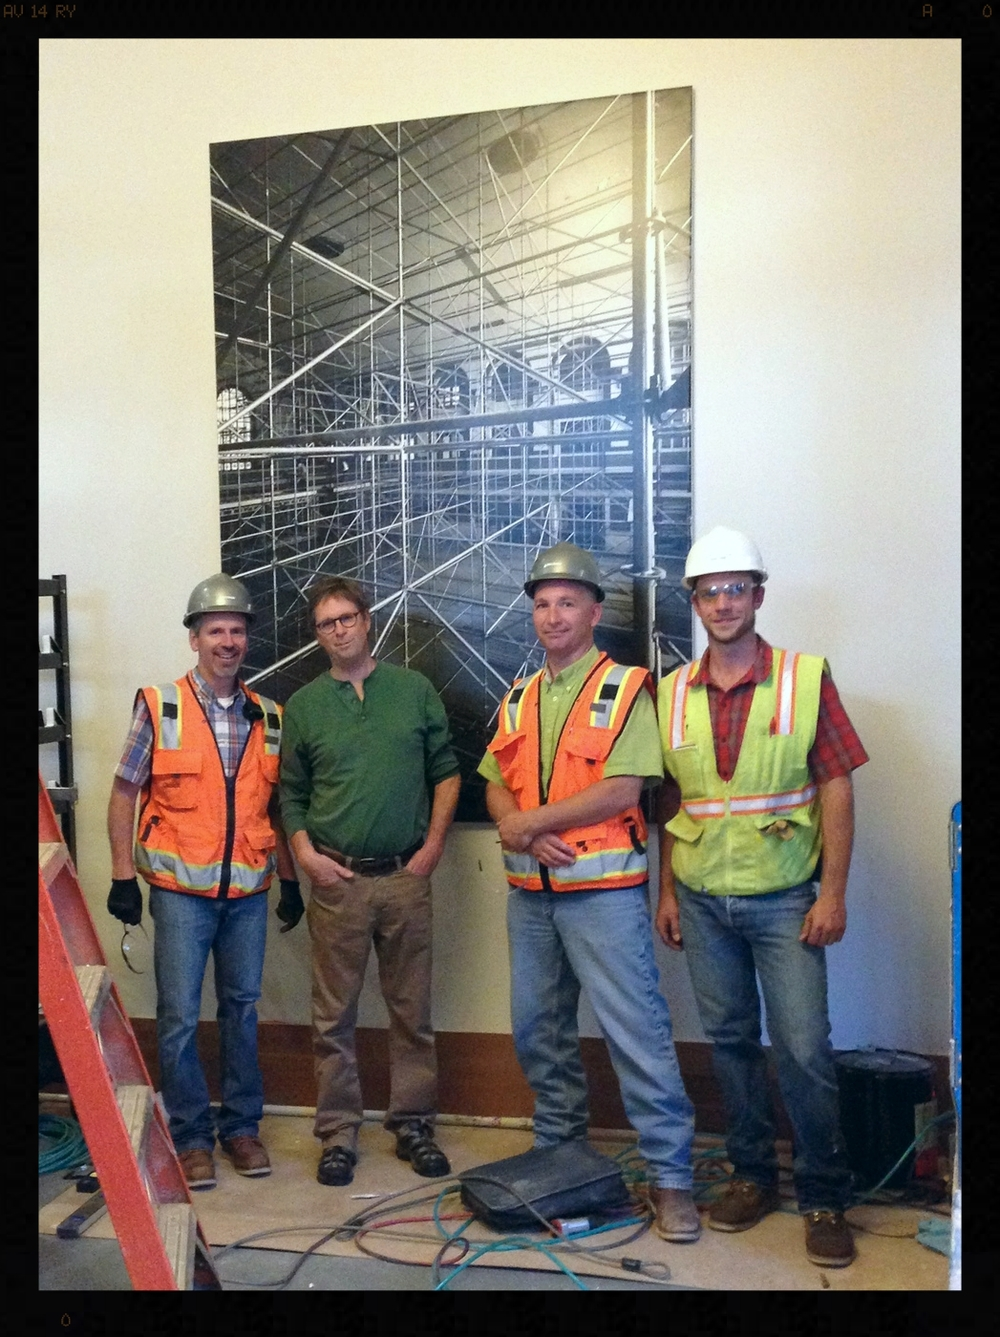 Giff with one of his prints and the construction team at Union Station